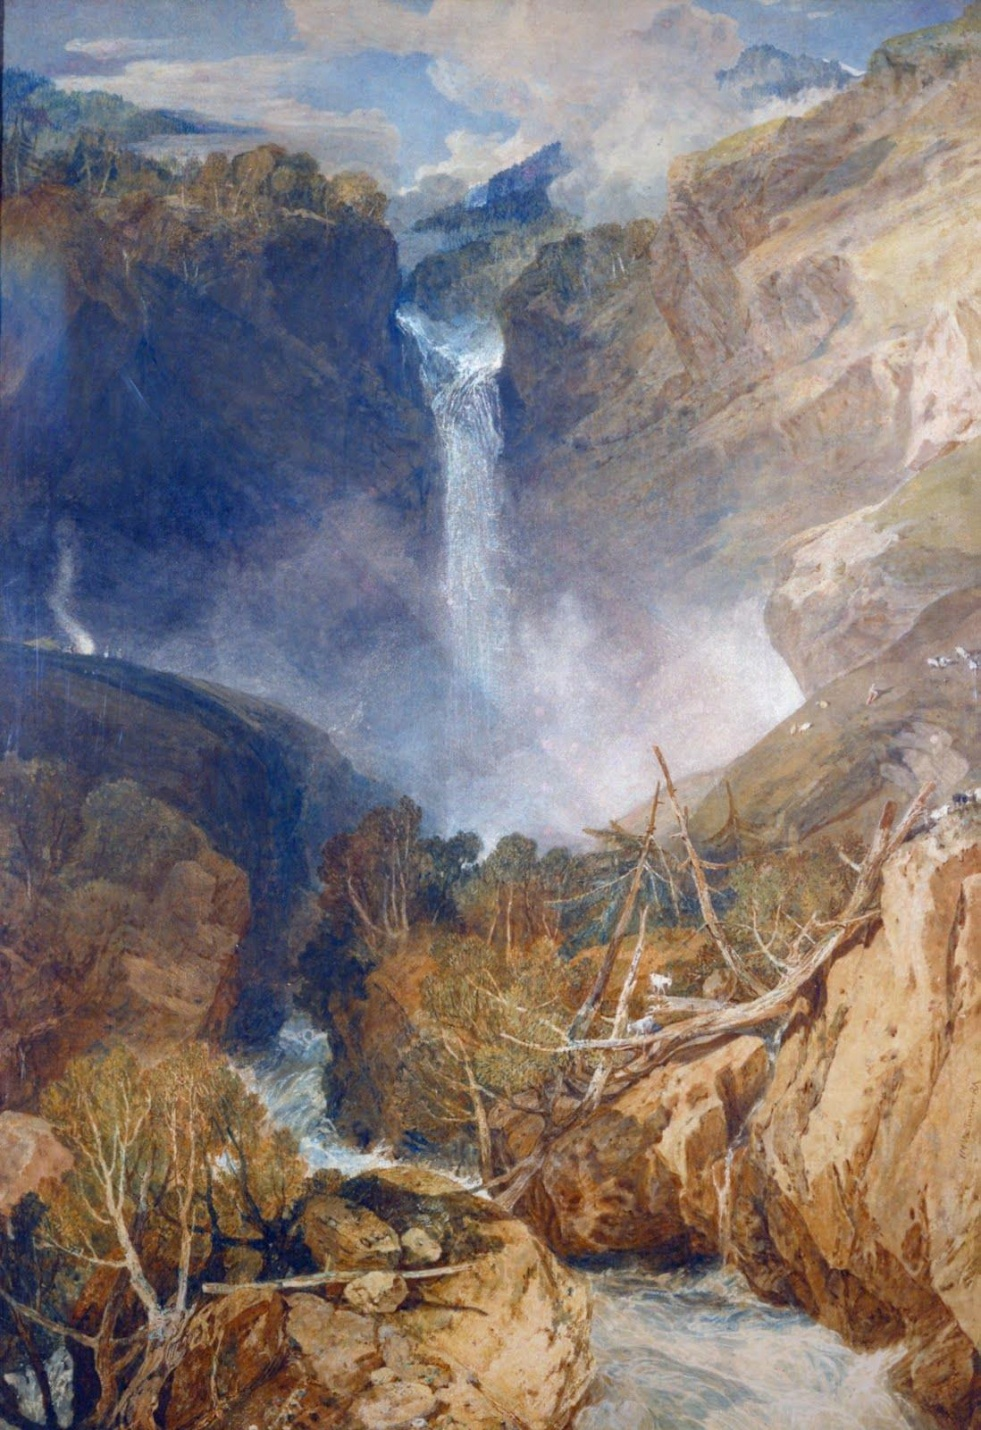 The Great Falls of the Reichenbach by Turner